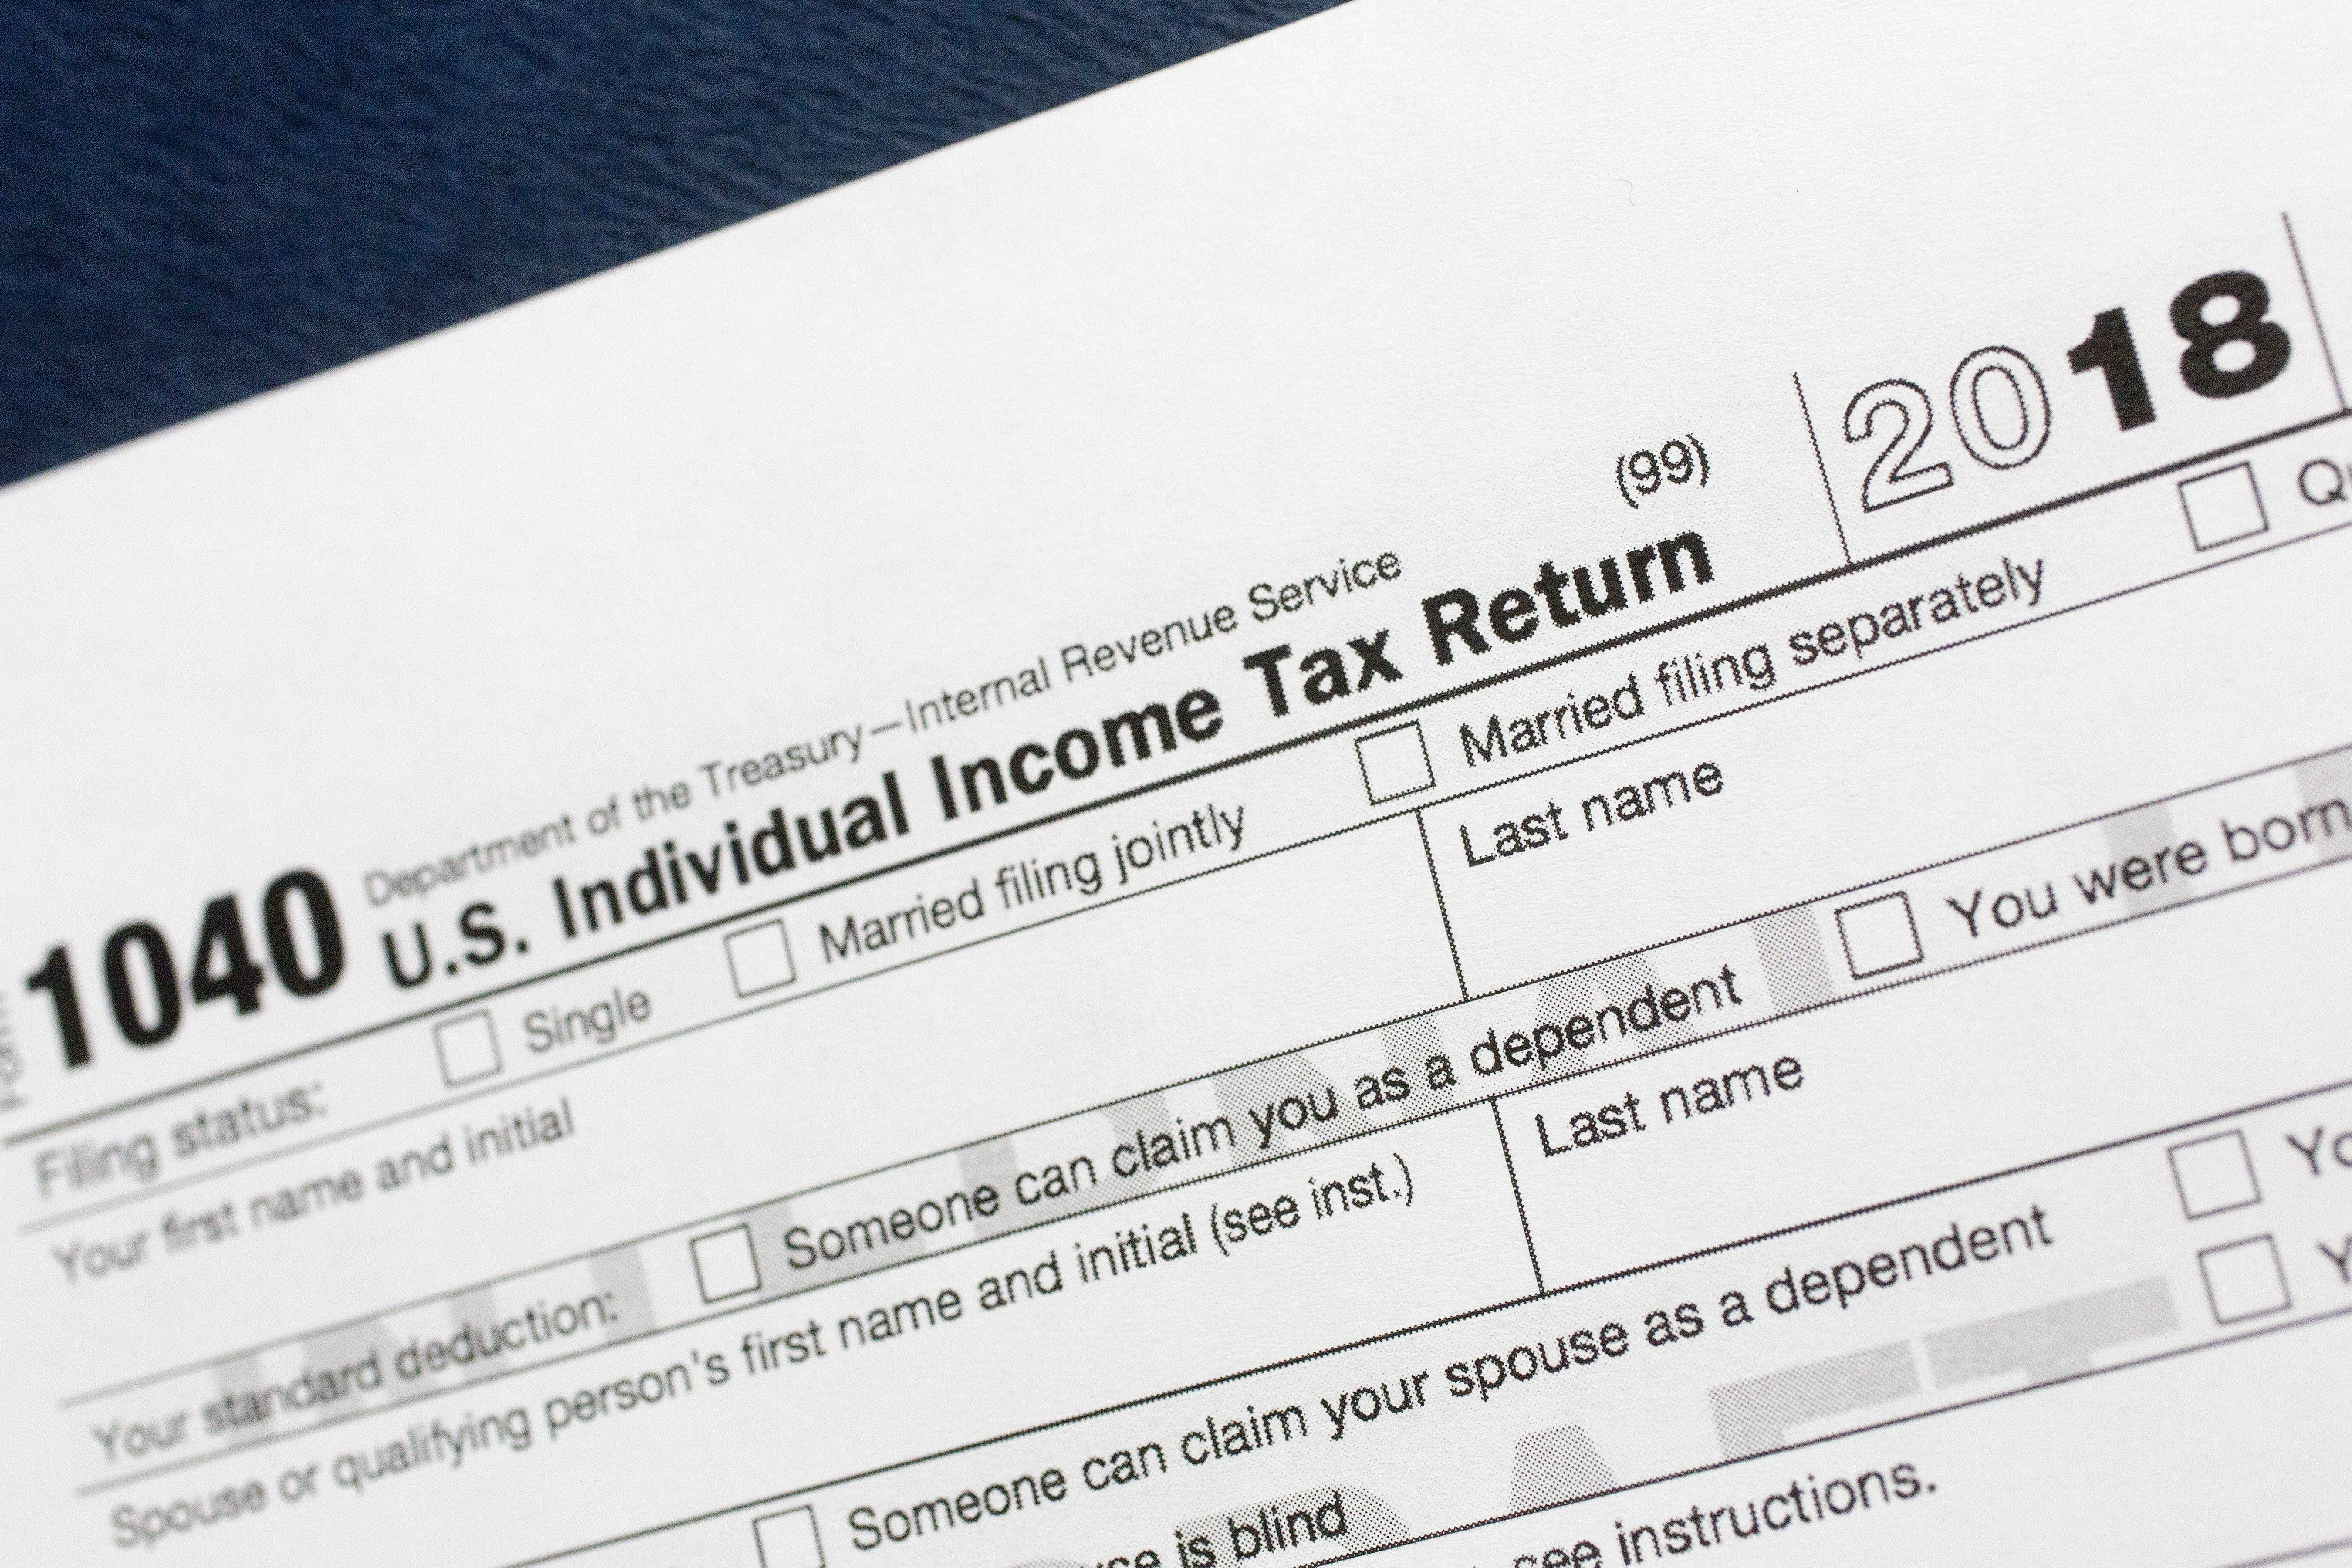 It's tax season, which also means it's tax scam season. The IRS is offering some tips to help taxpayers avoid some of the more common schemes.